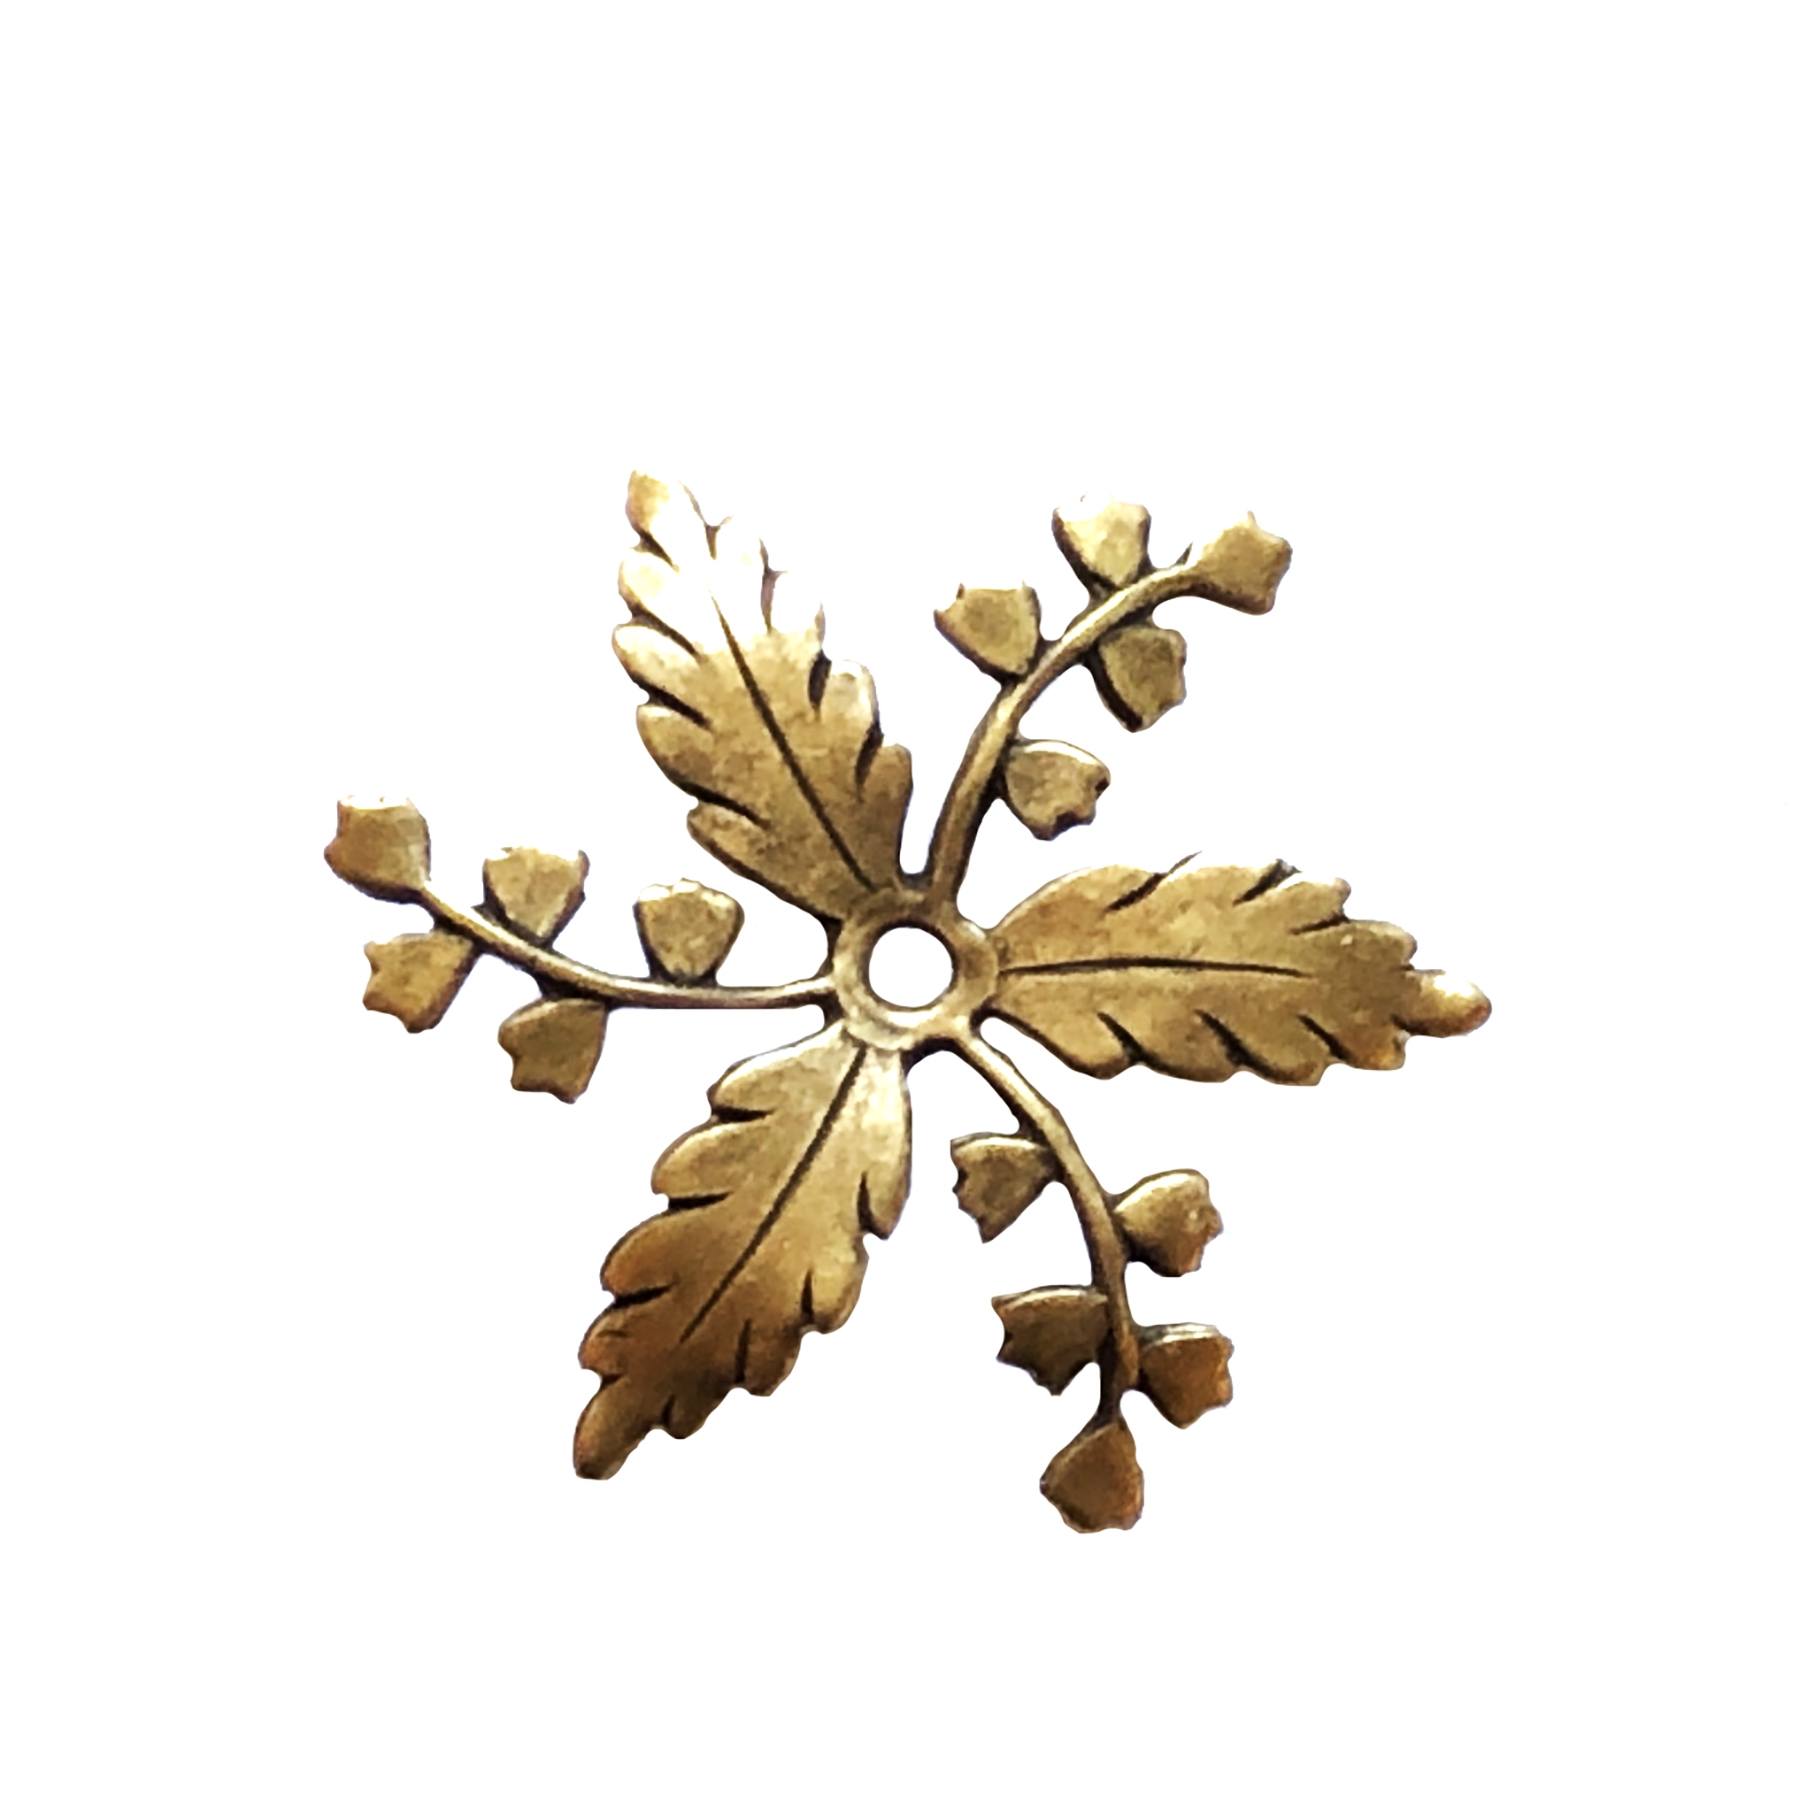 brass flowers, brass leaves, drilled leaves, 07219, floral pinwheel, jewelry making supplies, B'sue Boutiques, US made jewelry supplies, nickel free jewelry supplies, drilled leaves, jewelry supplies, brass ox, antique brass